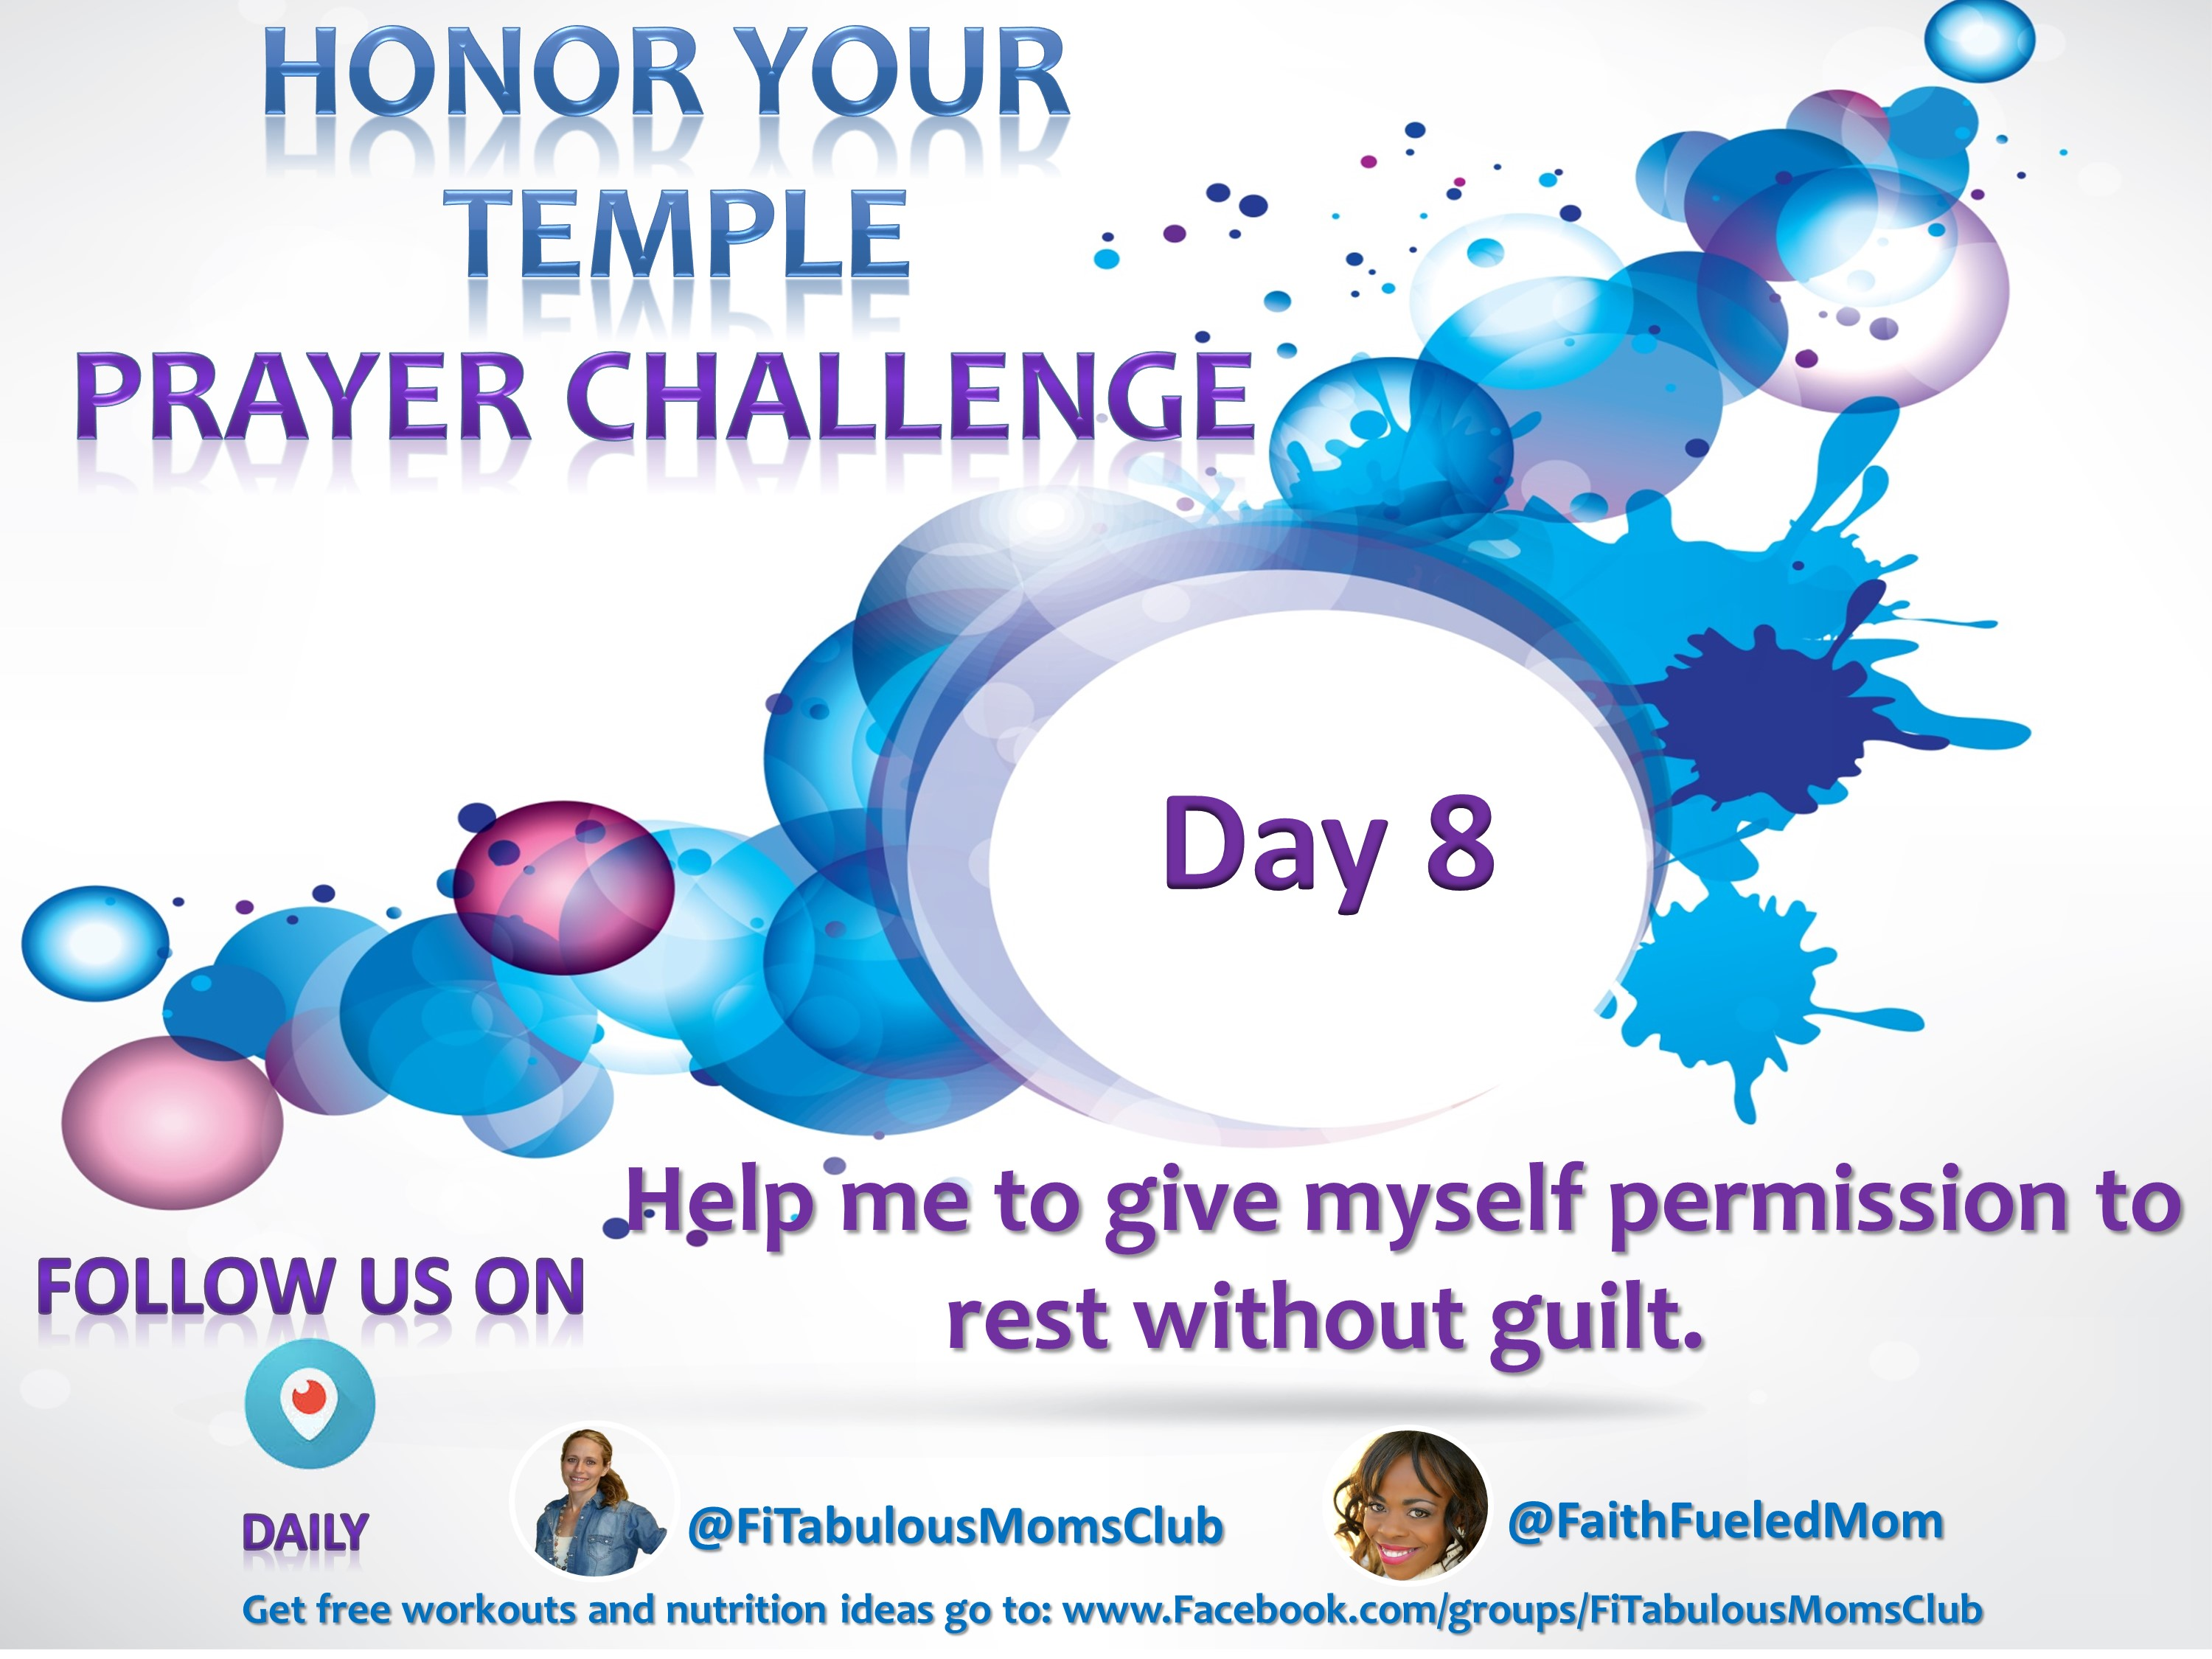 Day 8 Honor Your Temple Prayer Challenge